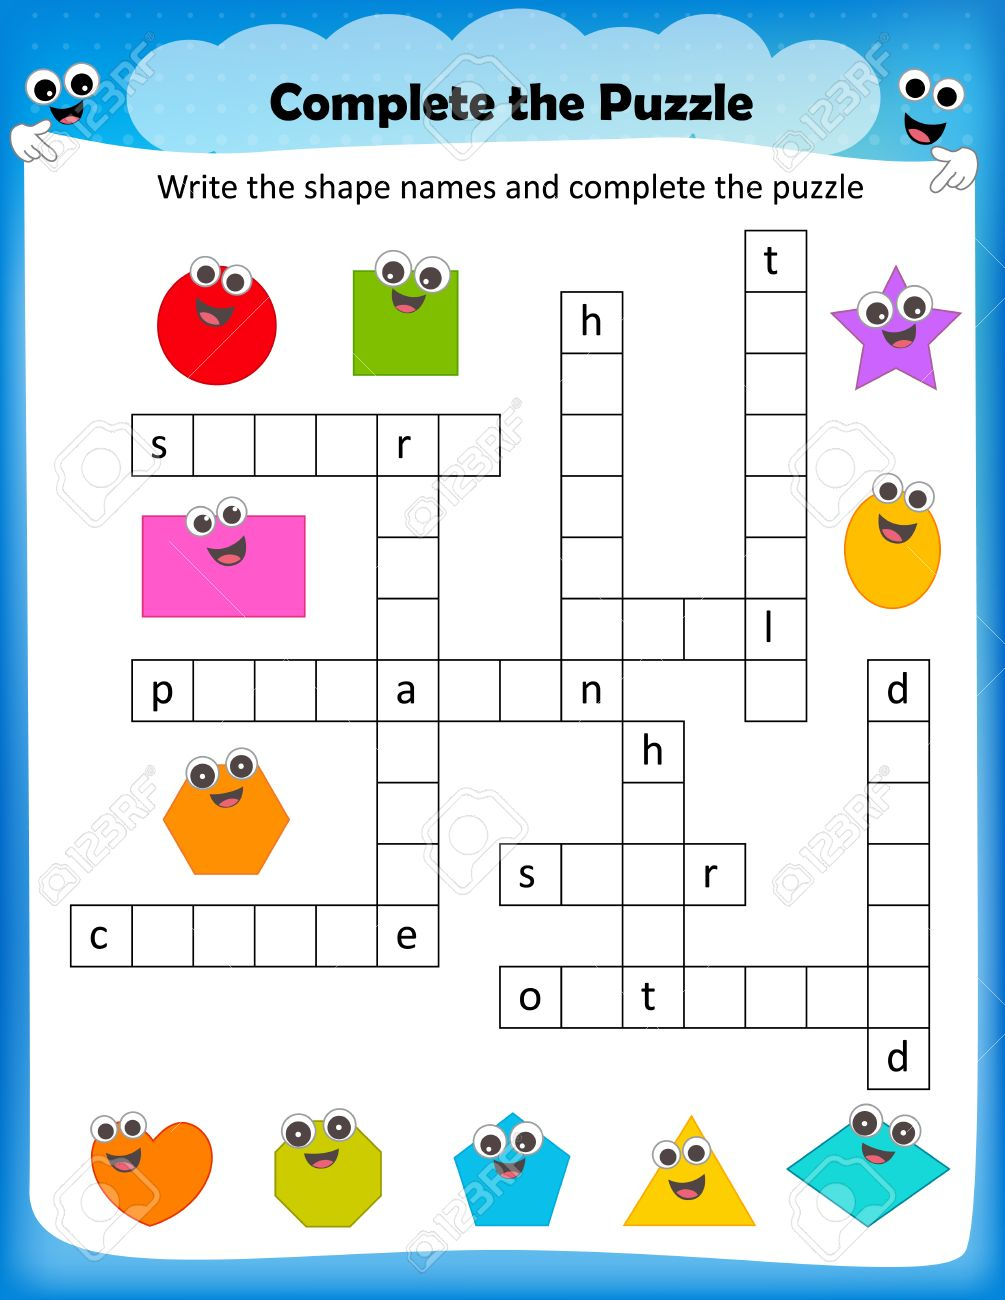 Worksheet - Complete The Crossword Puzzle 2D Shapes Worksheet - Printable Puzzle For Preschool